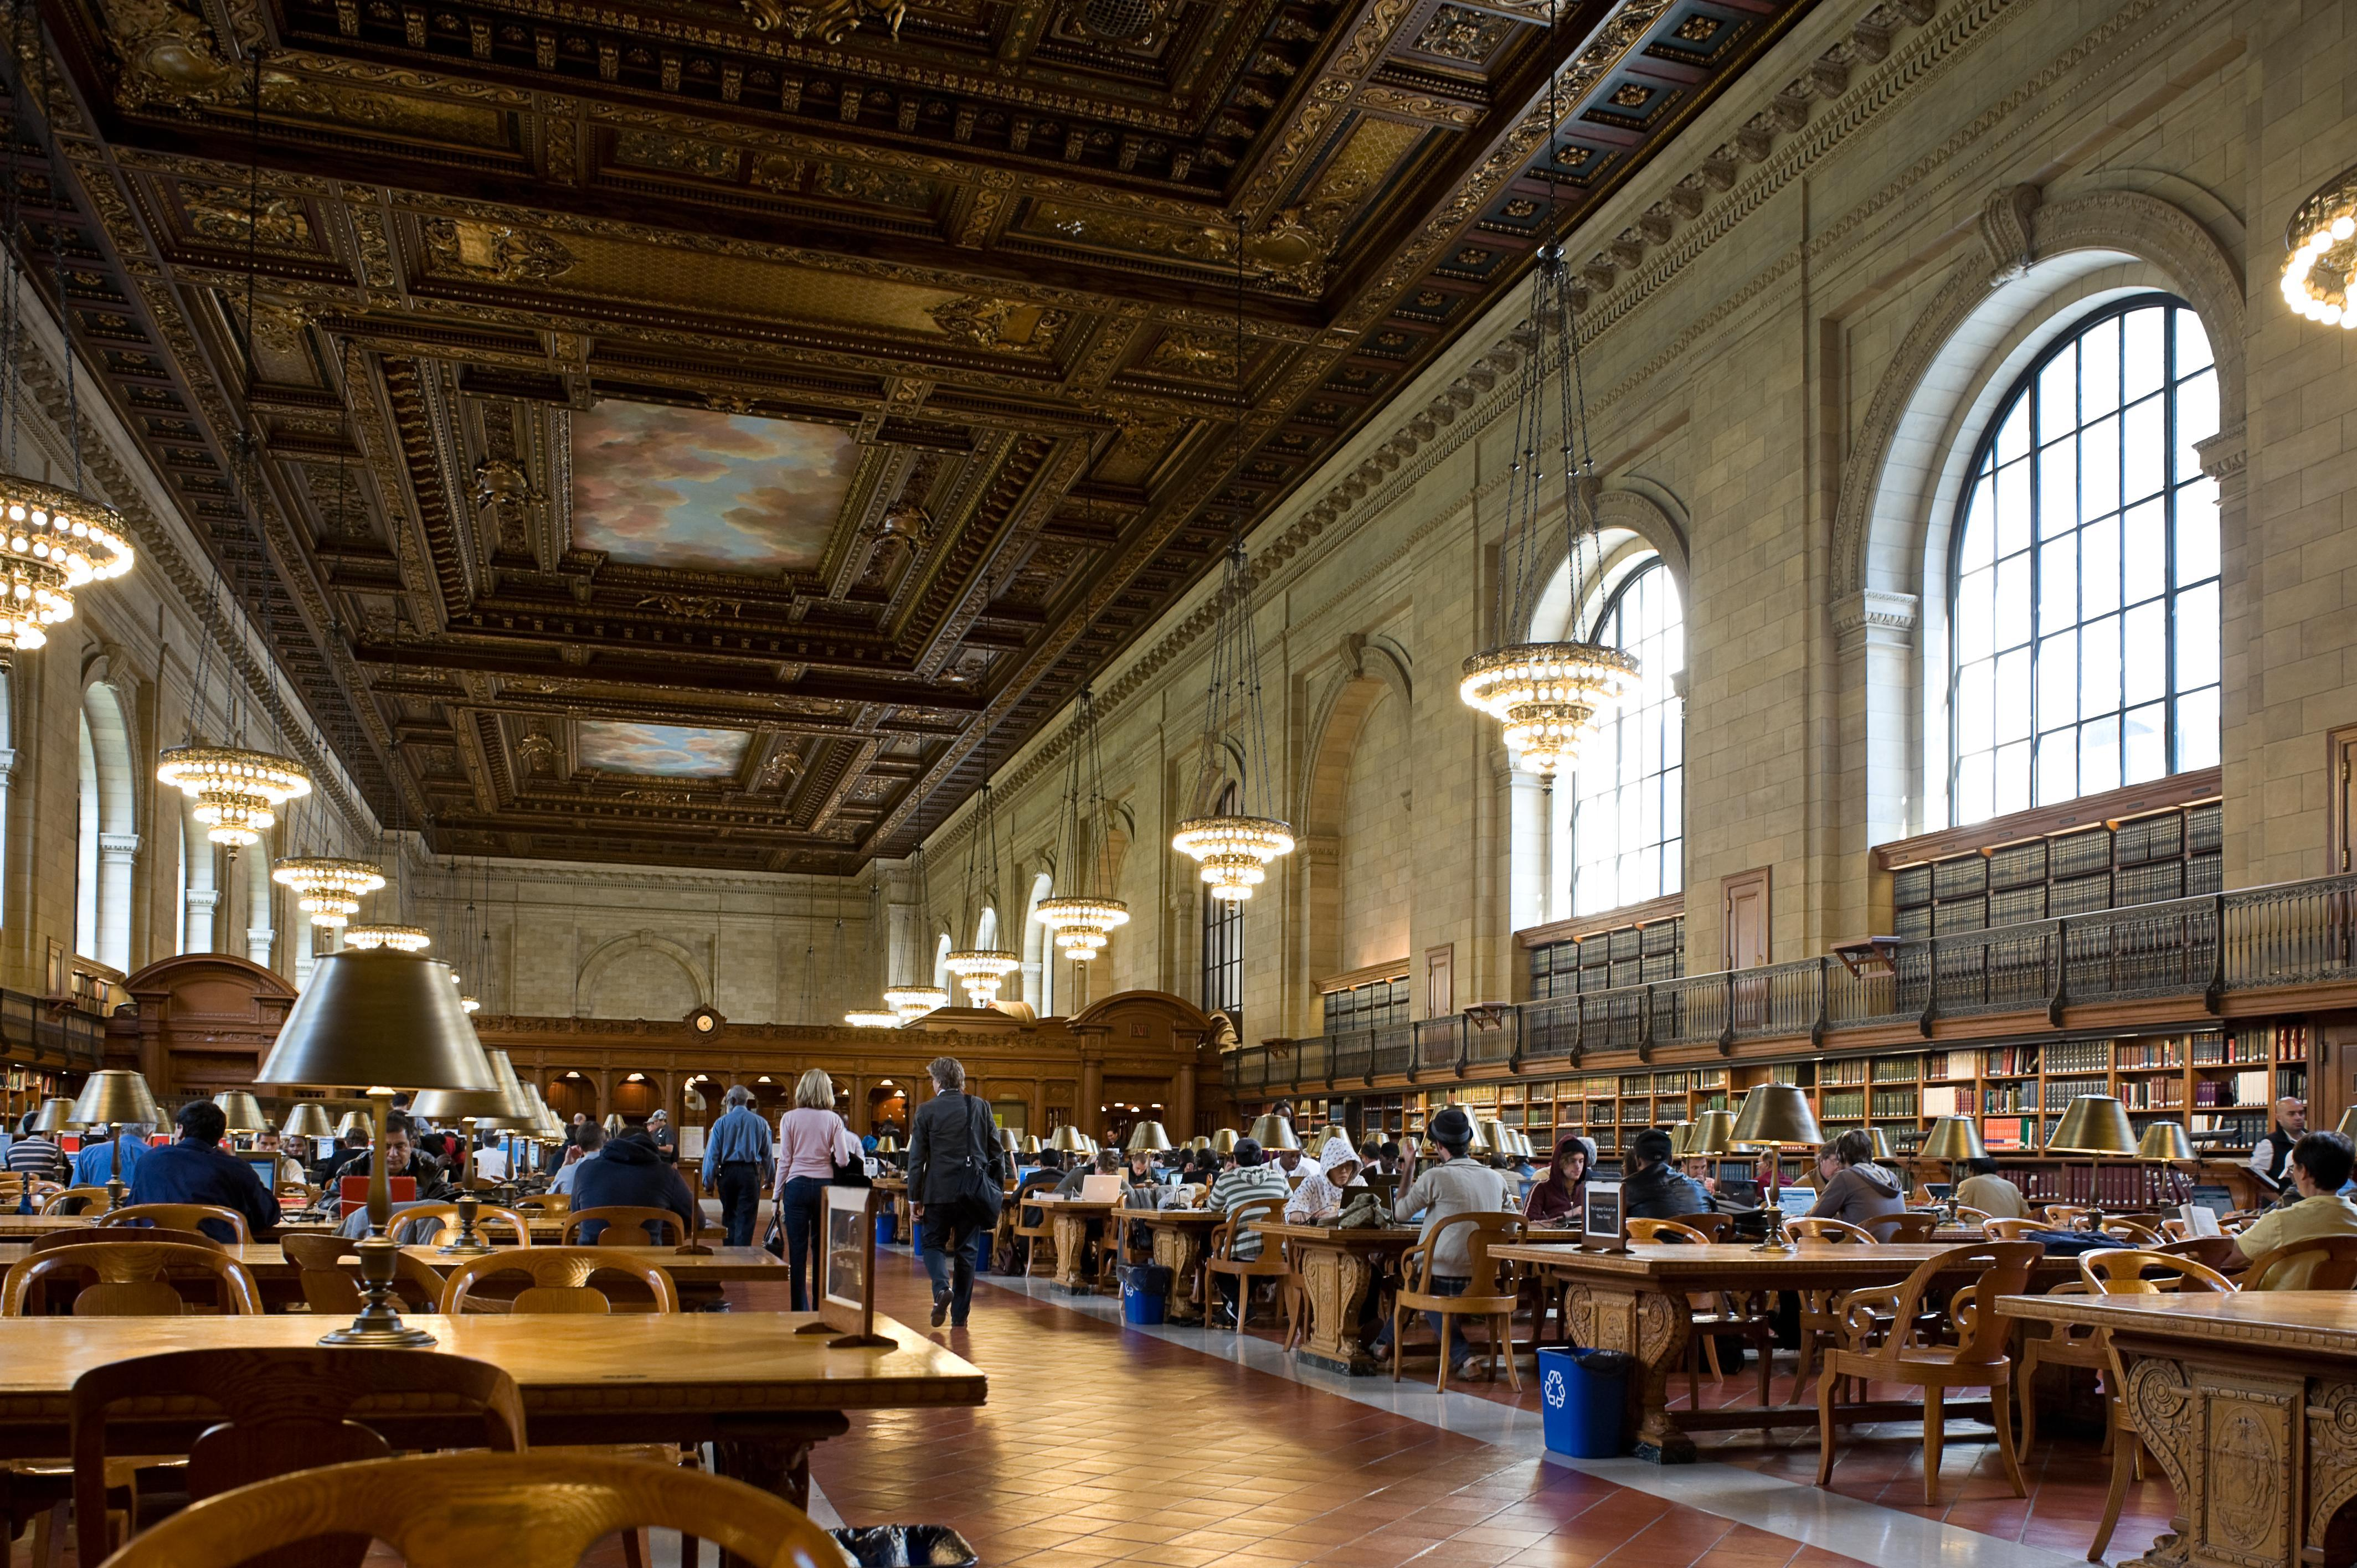 Main reading room at the New York Public Library